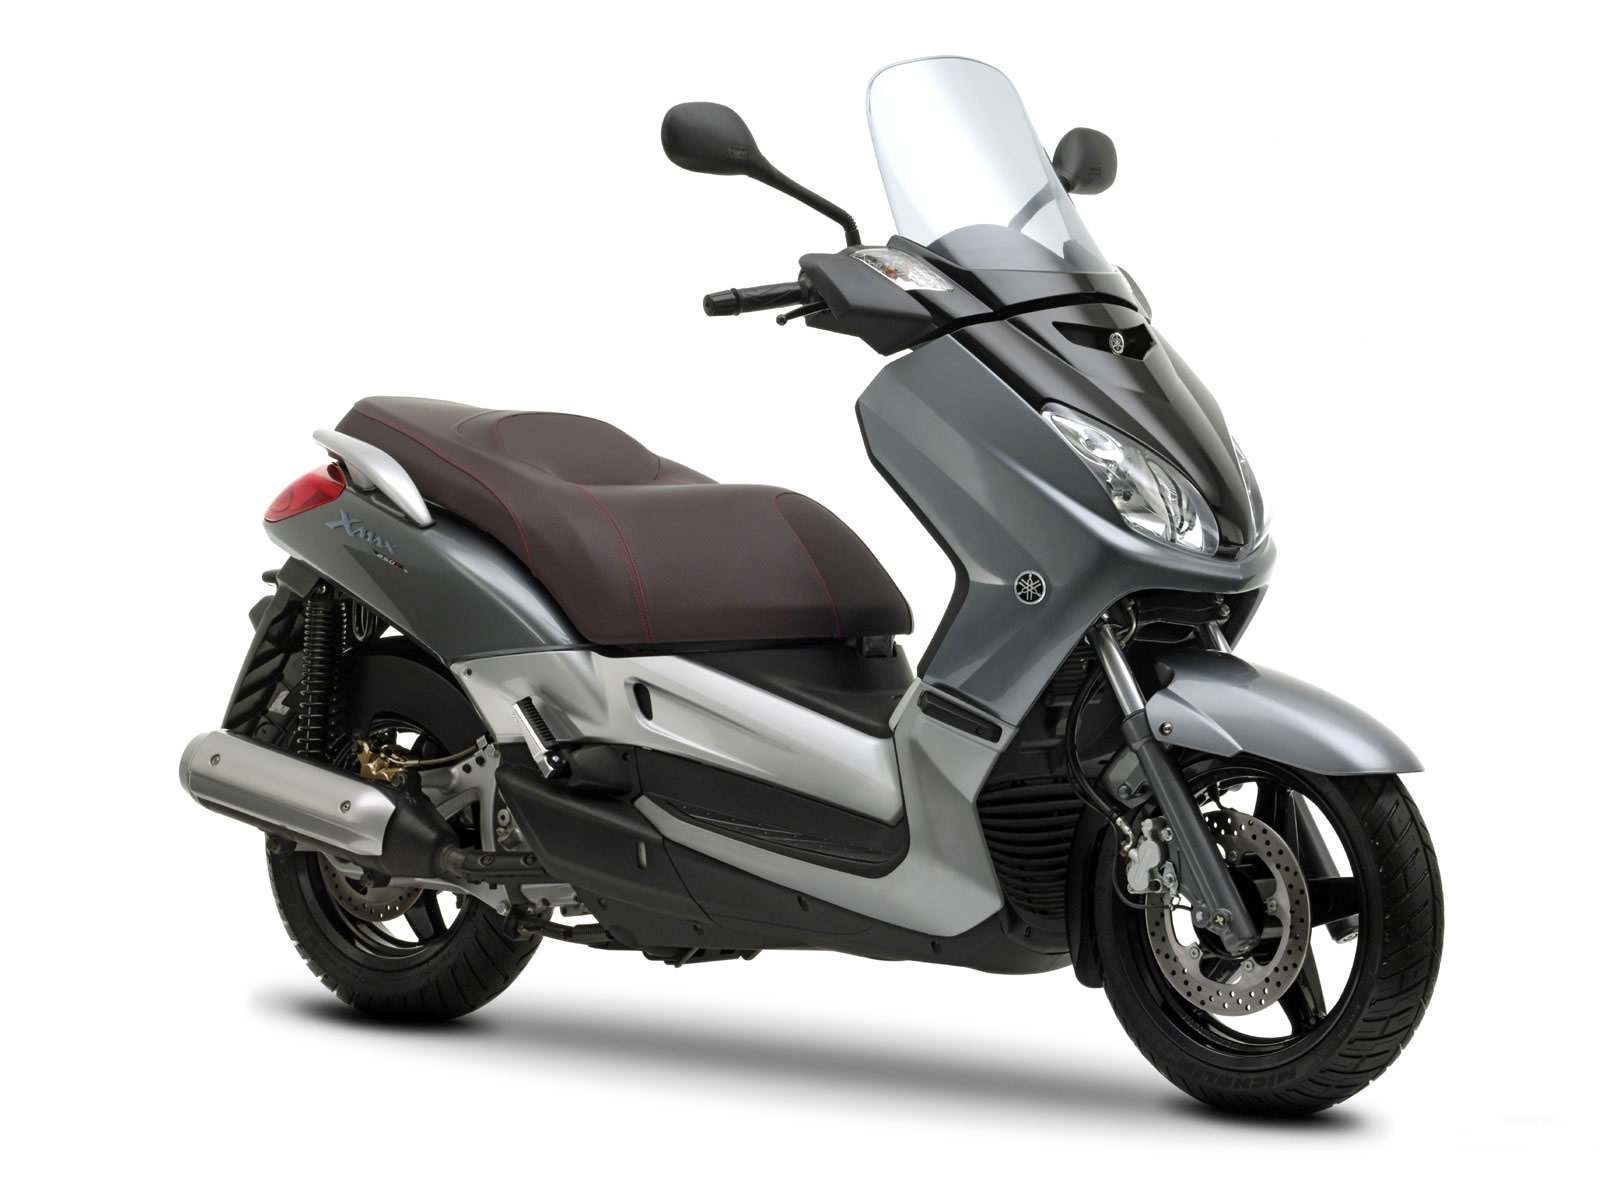 2008 yamaha x max 250 scooter pictures specifications. Black Bedroom Furniture Sets. Home Design Ideas